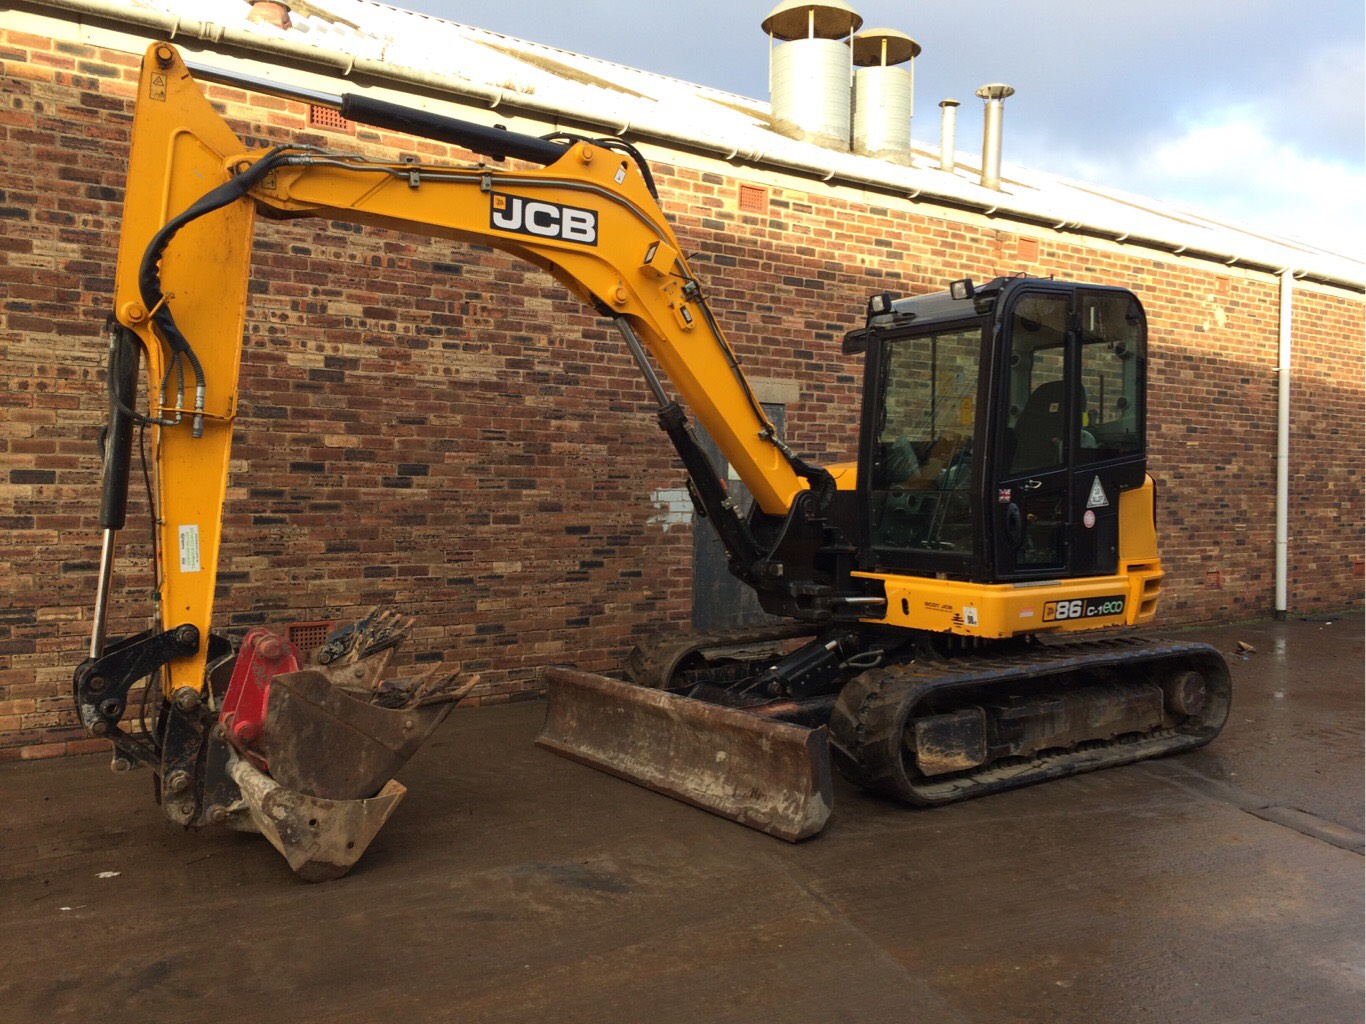 Hyundai Excavator Price List 210lc 7 Wiring Diagram Browse 728 Excavators Listings At 2012 R320lc 9 Our Best Ever On The Es18zt And 2